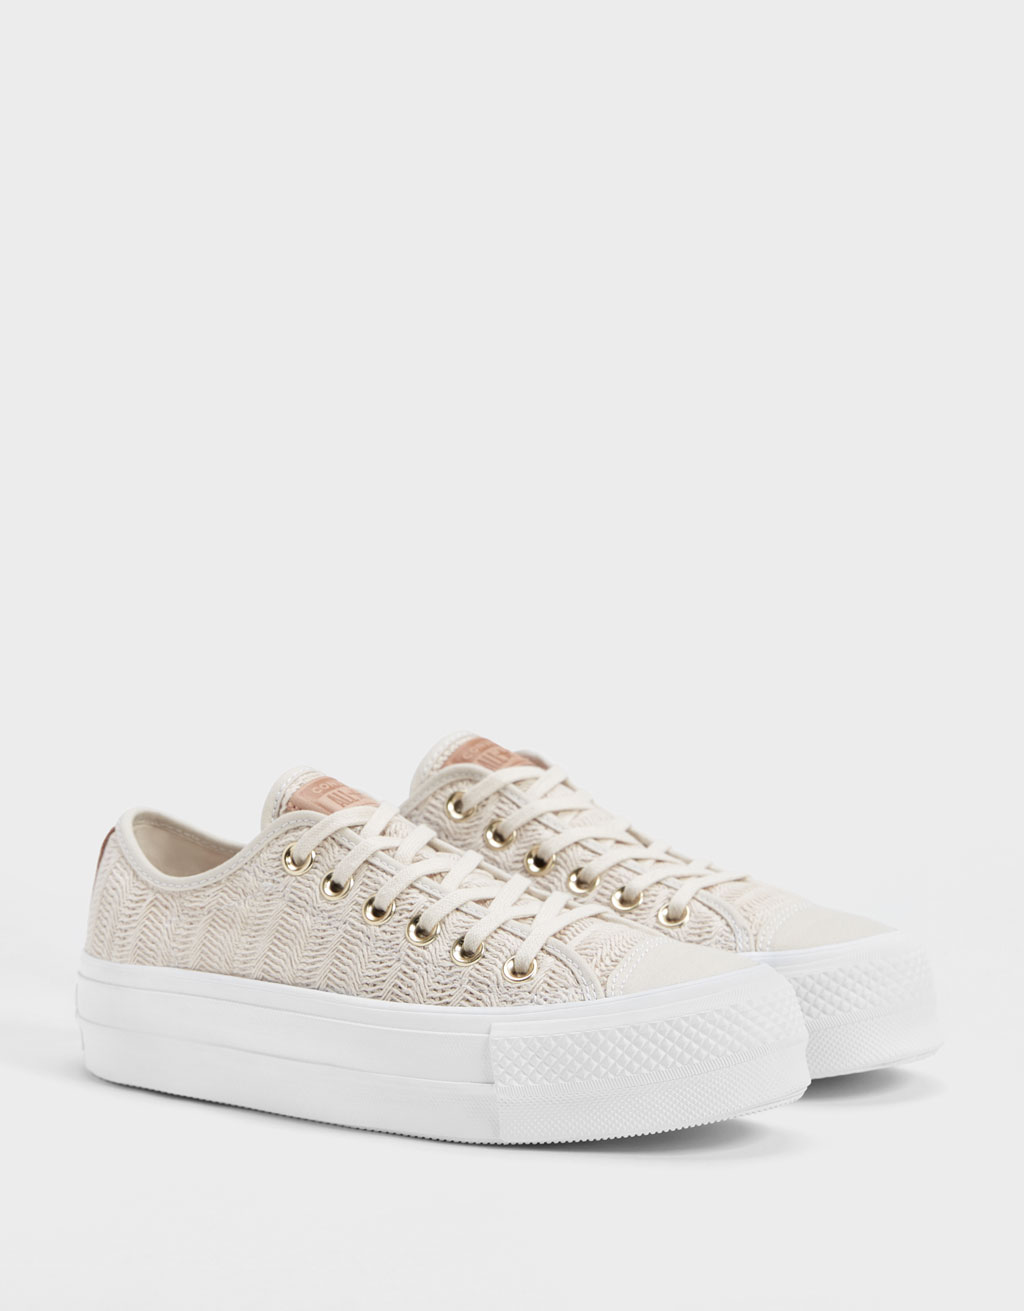 Naturel sneakers met plateauzool CONVERSE CHUCK TAYLOR ALL STAR